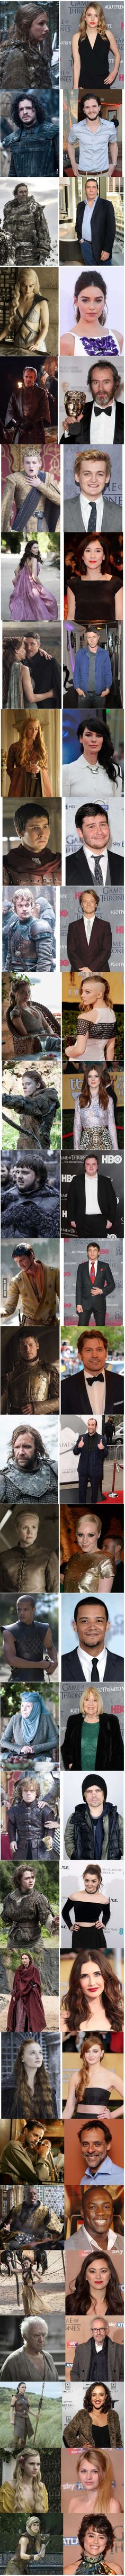 Game Of Thrones cast. On and Off the Set